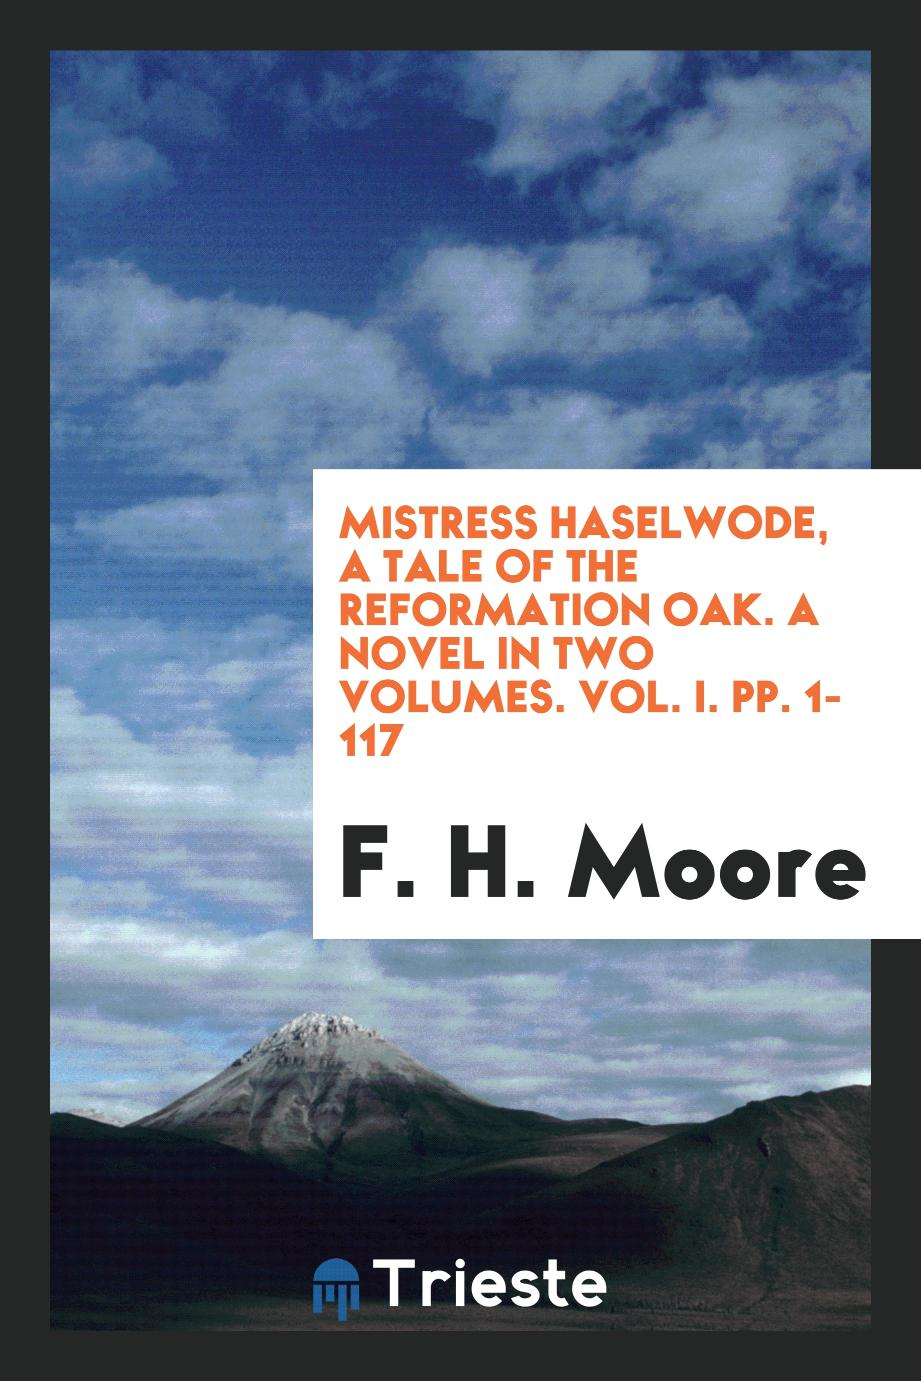 Mistress Haselwode, a Tale of the Reformation Oak. A Novel in Two Volumes. Vol. I. pp. 1-117